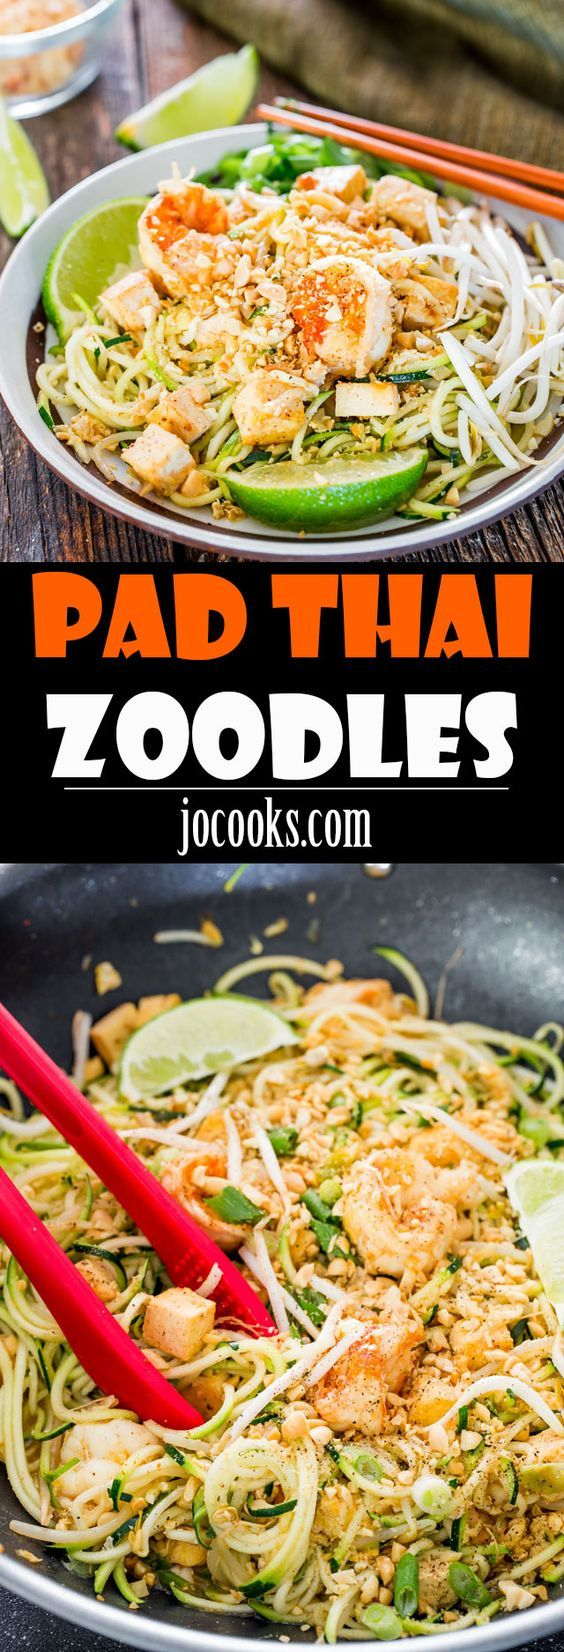 Pad Thai Zoodles - take your favorite Pad Thai recipe and make it healthier with oodles of zoodles instead of high carb noodles, weighing in at a mere 263 calories a serving.